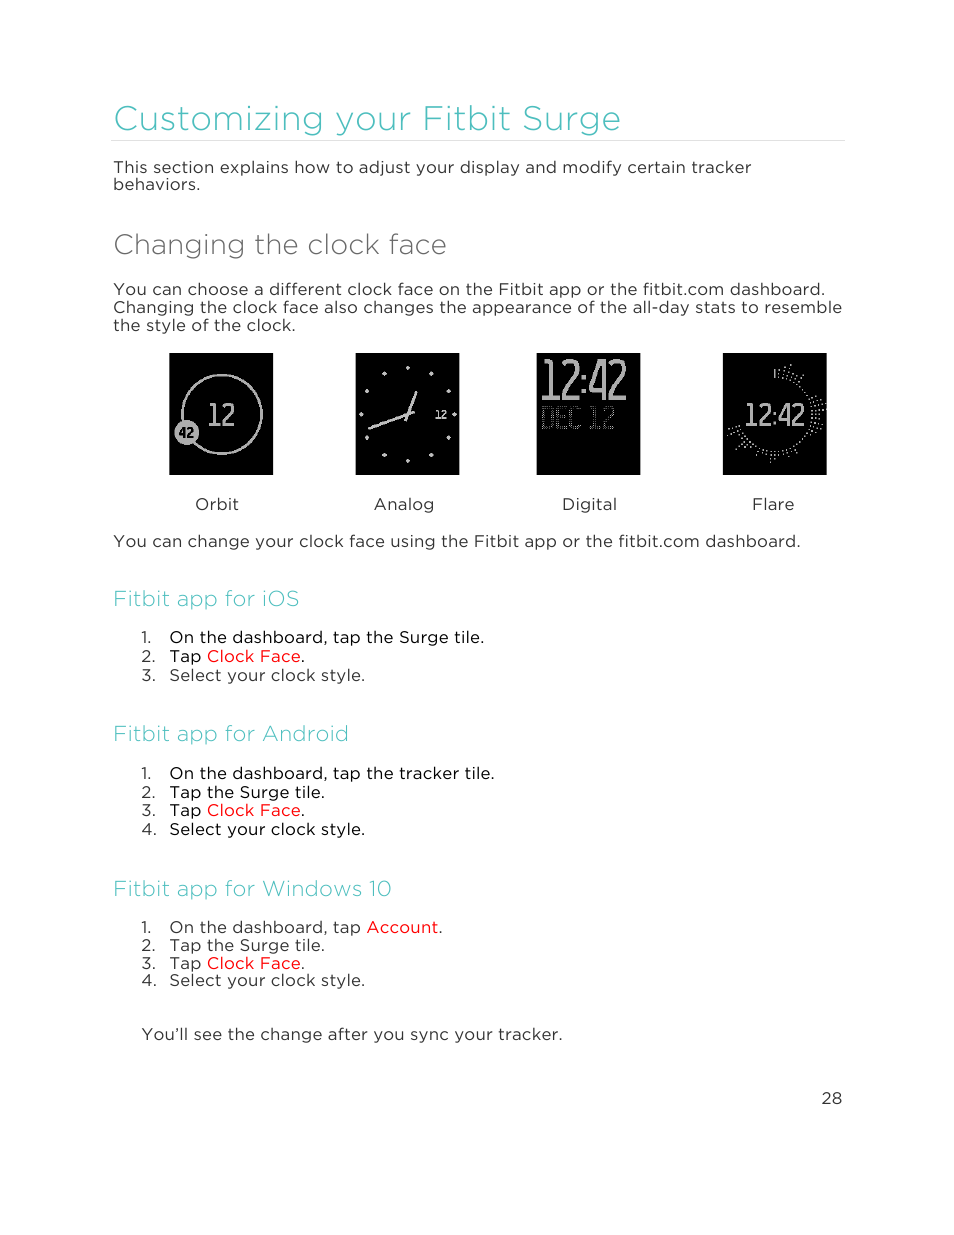 Changing the clock face, Customizing your fitbit surge, Fitbit app